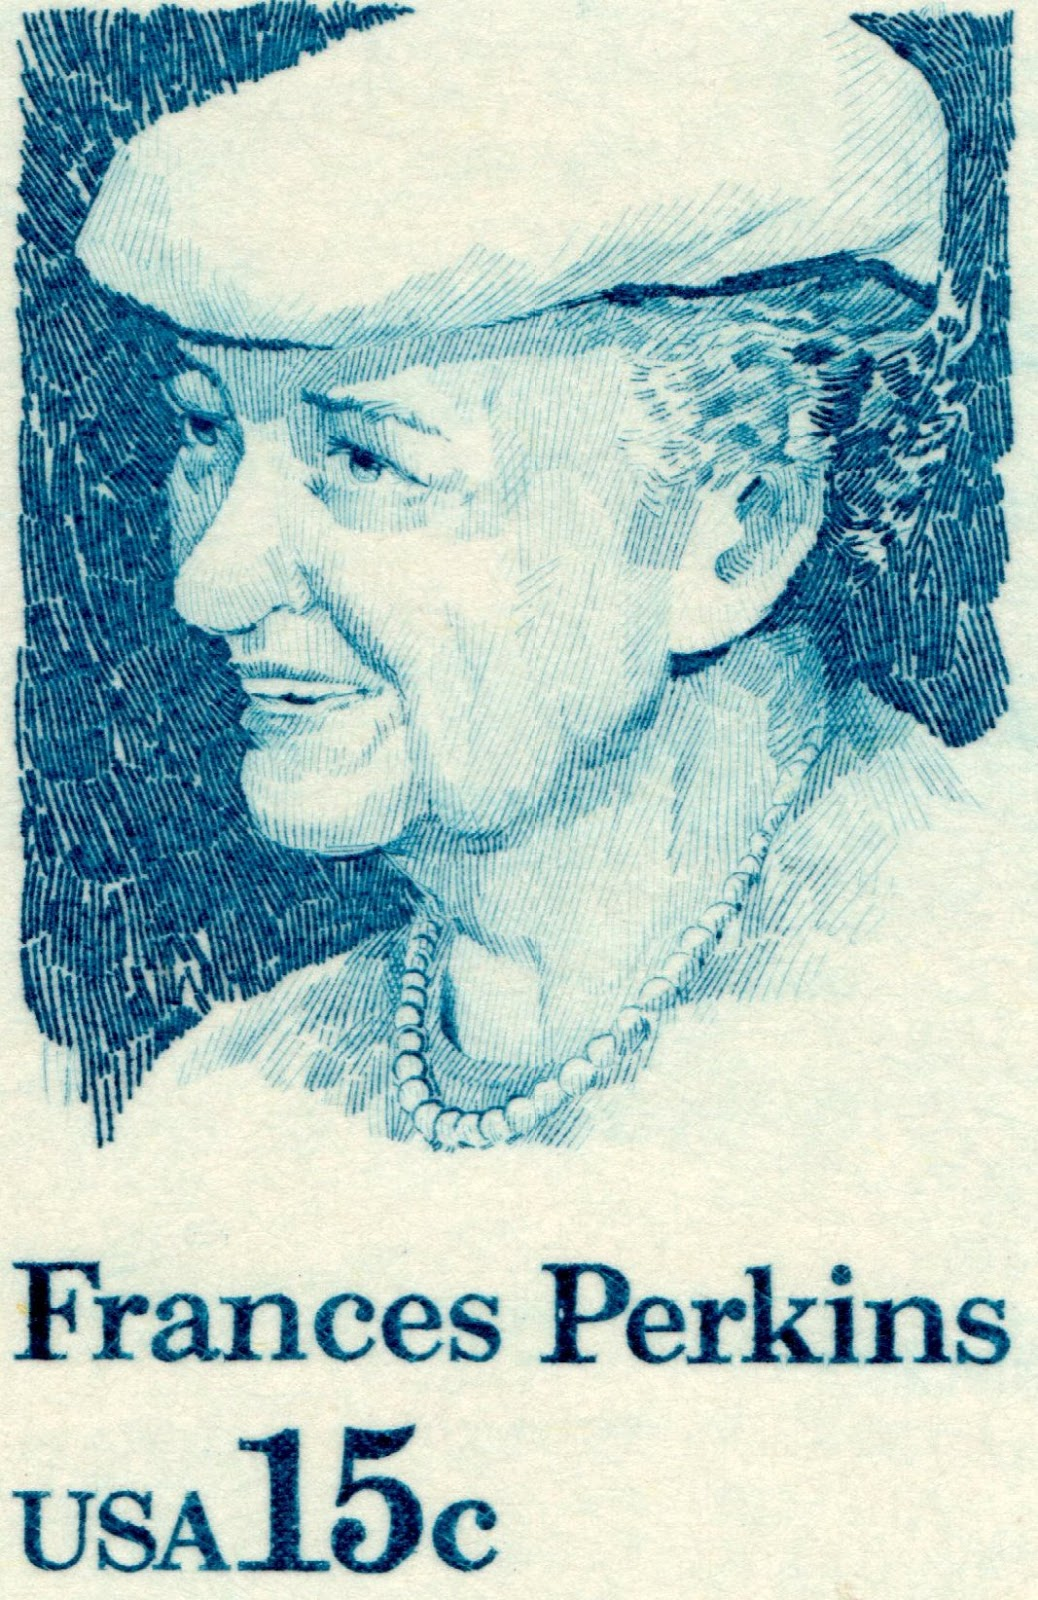 frances perkins essay Highlight the important contributions of the individual you selected outline the individual's path to working in the social work field describe the most important contribution(s) of the individual to the field.